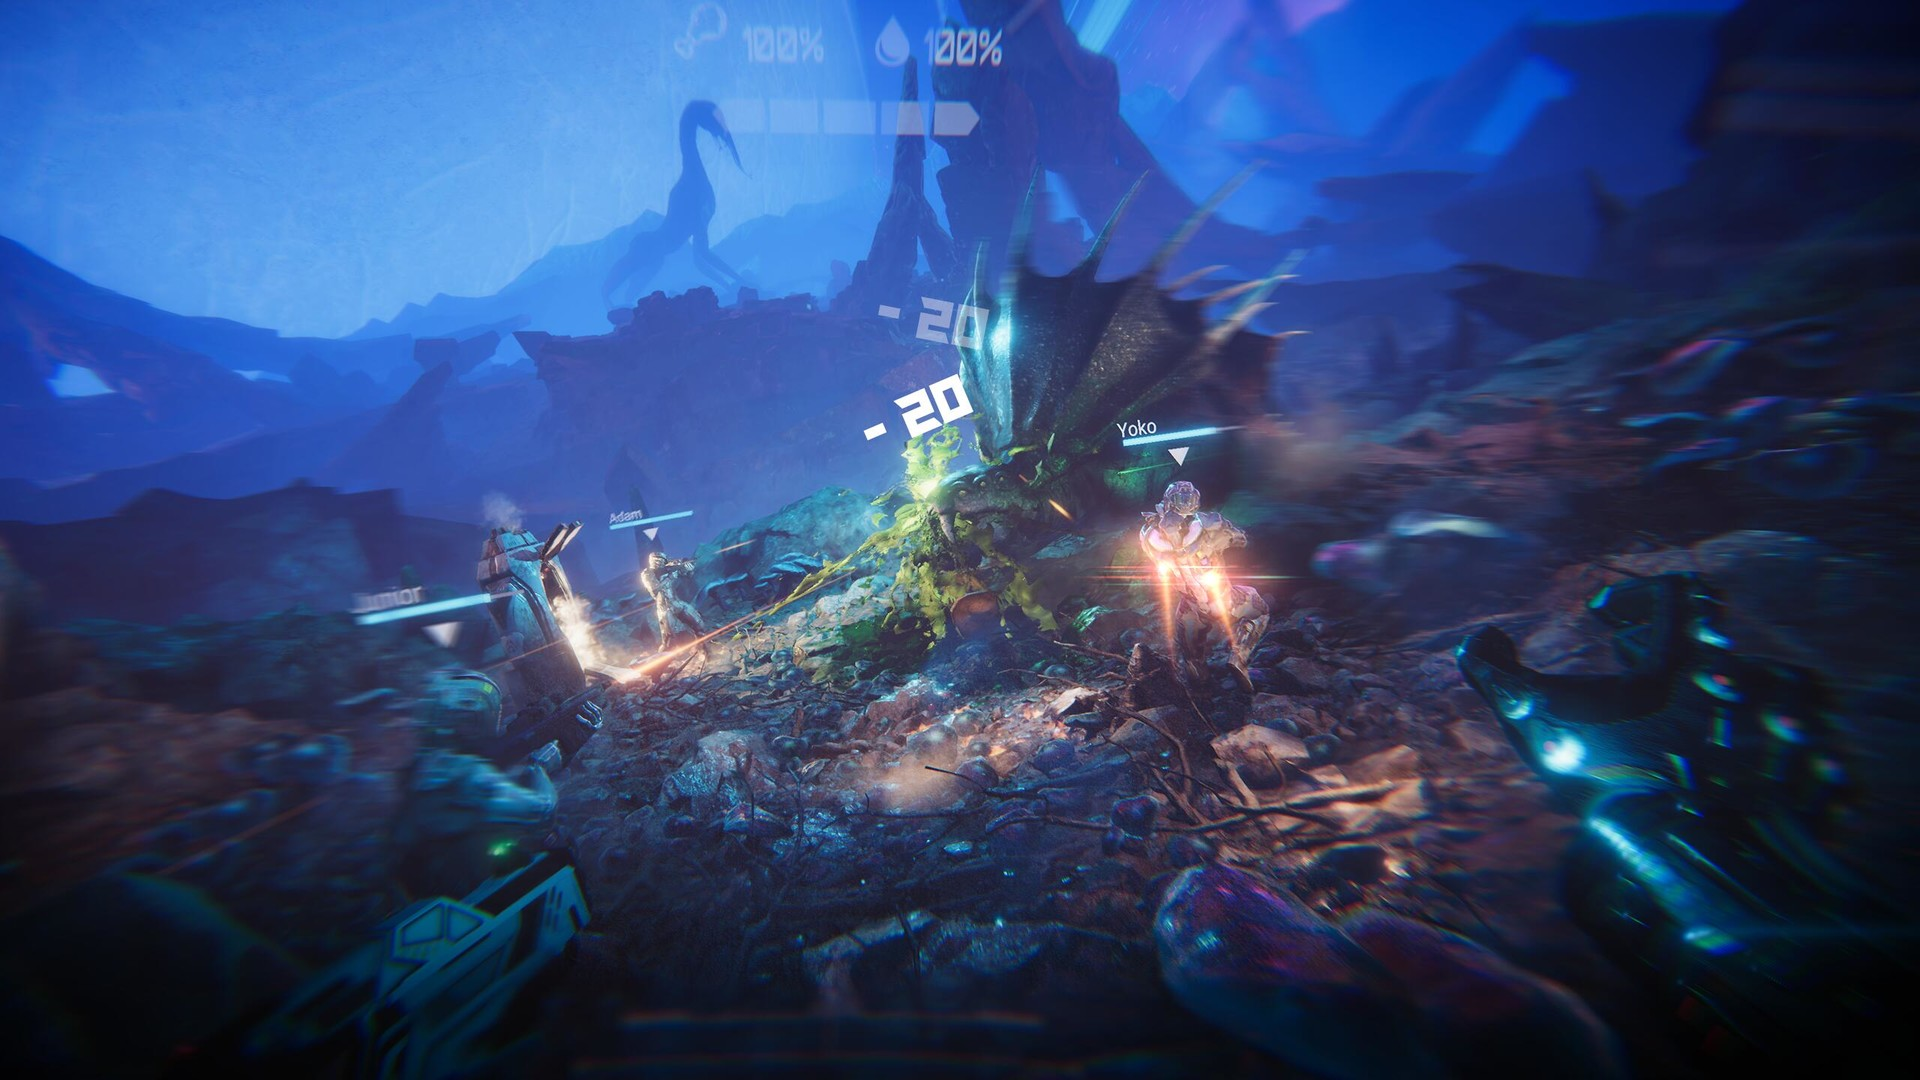 Seeking Dawn Is Coming To Oculus Rift And HTC Vive